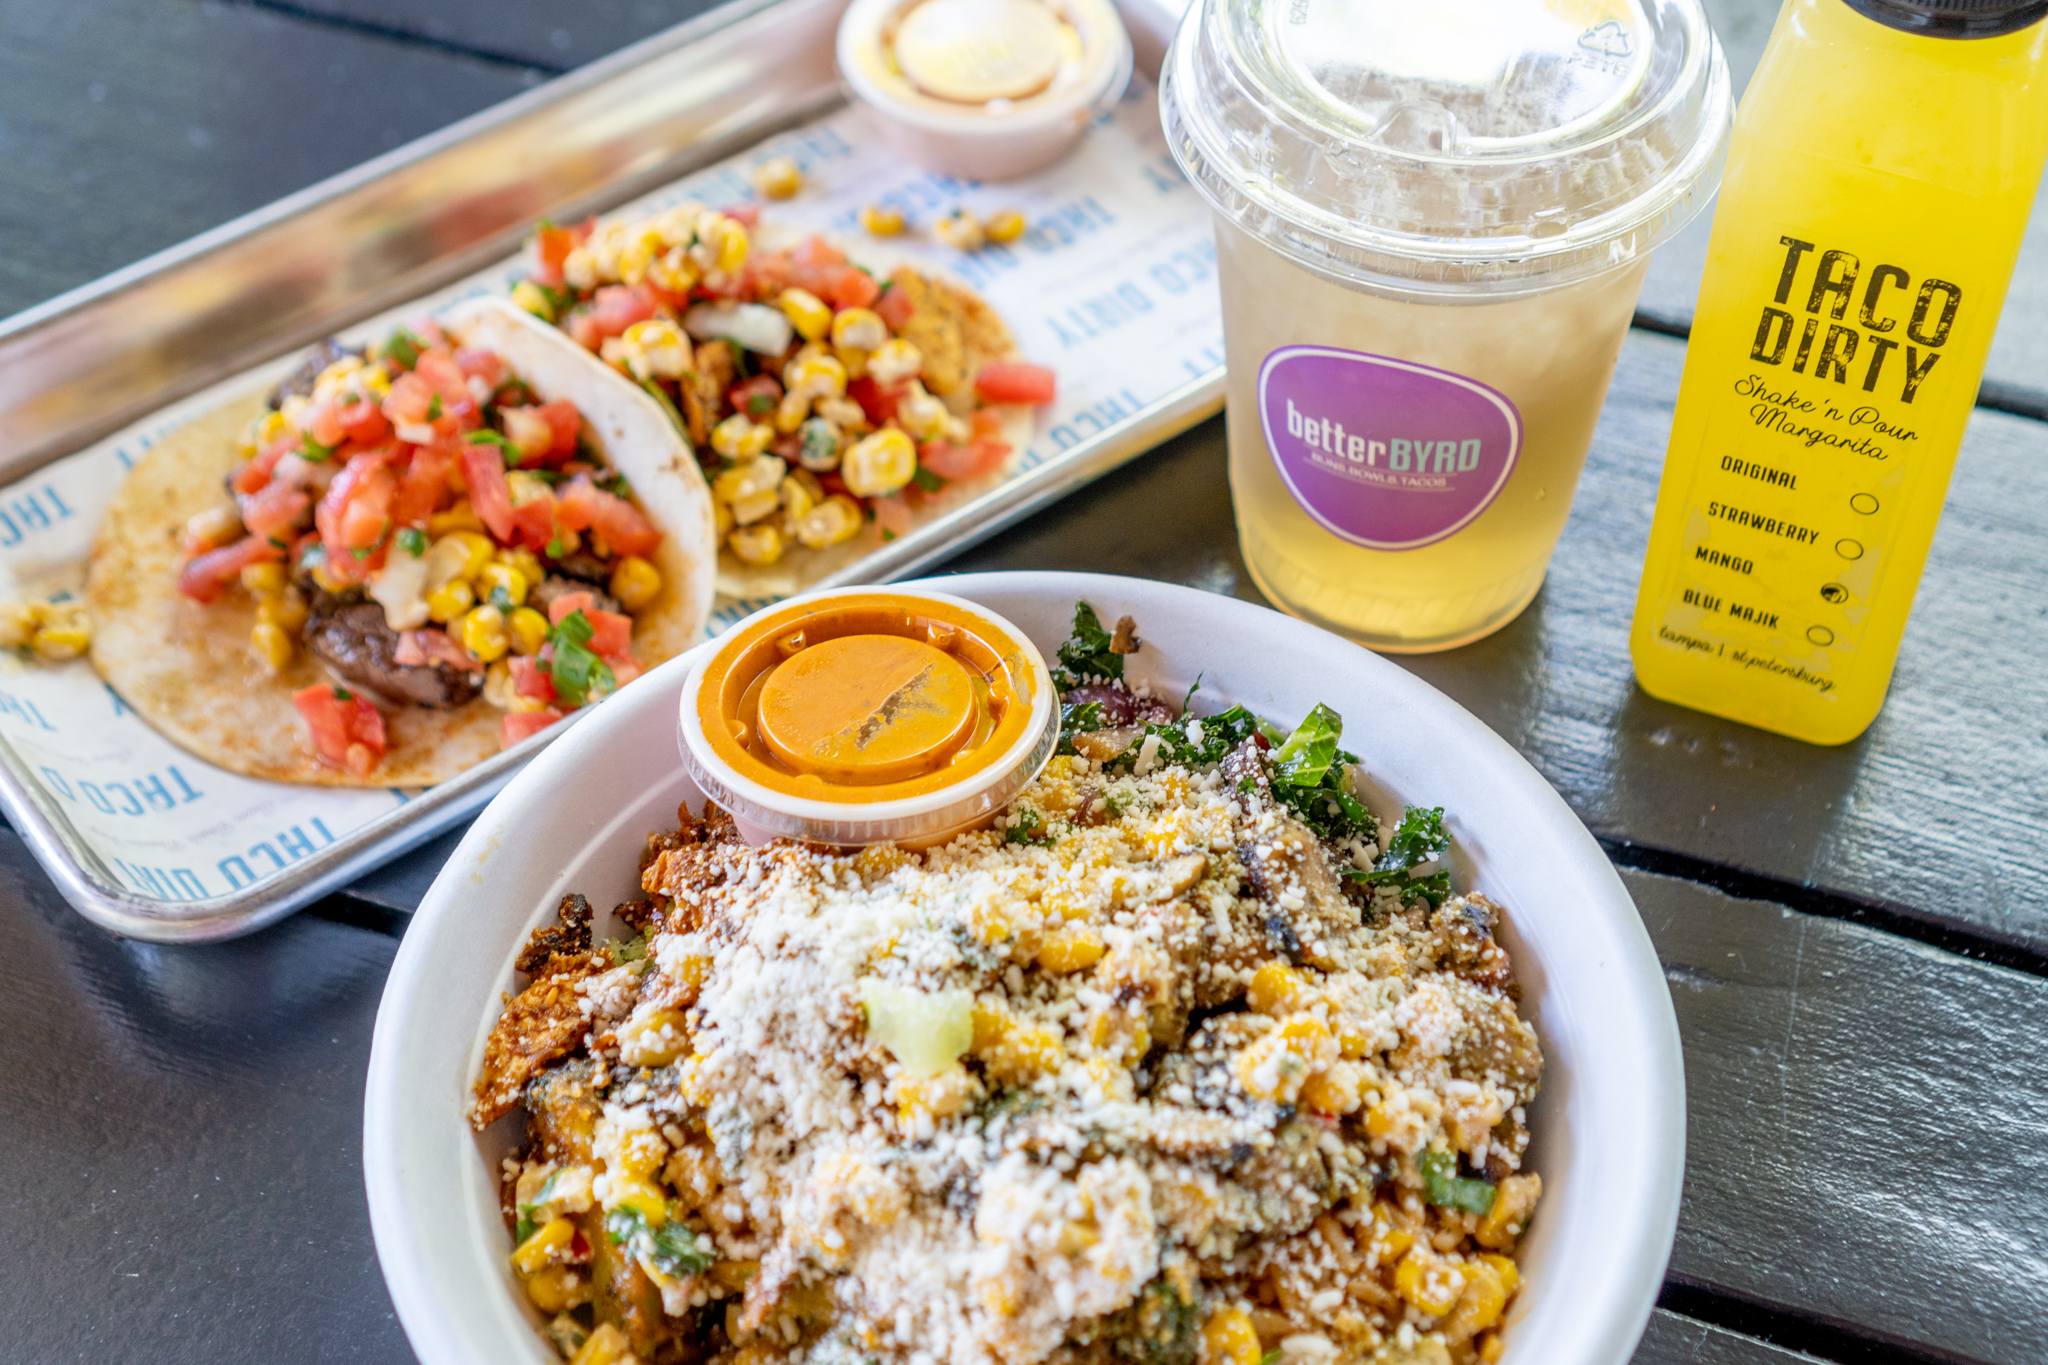 On The Fly Taco Dirty Bowl, Tacos and Drinks